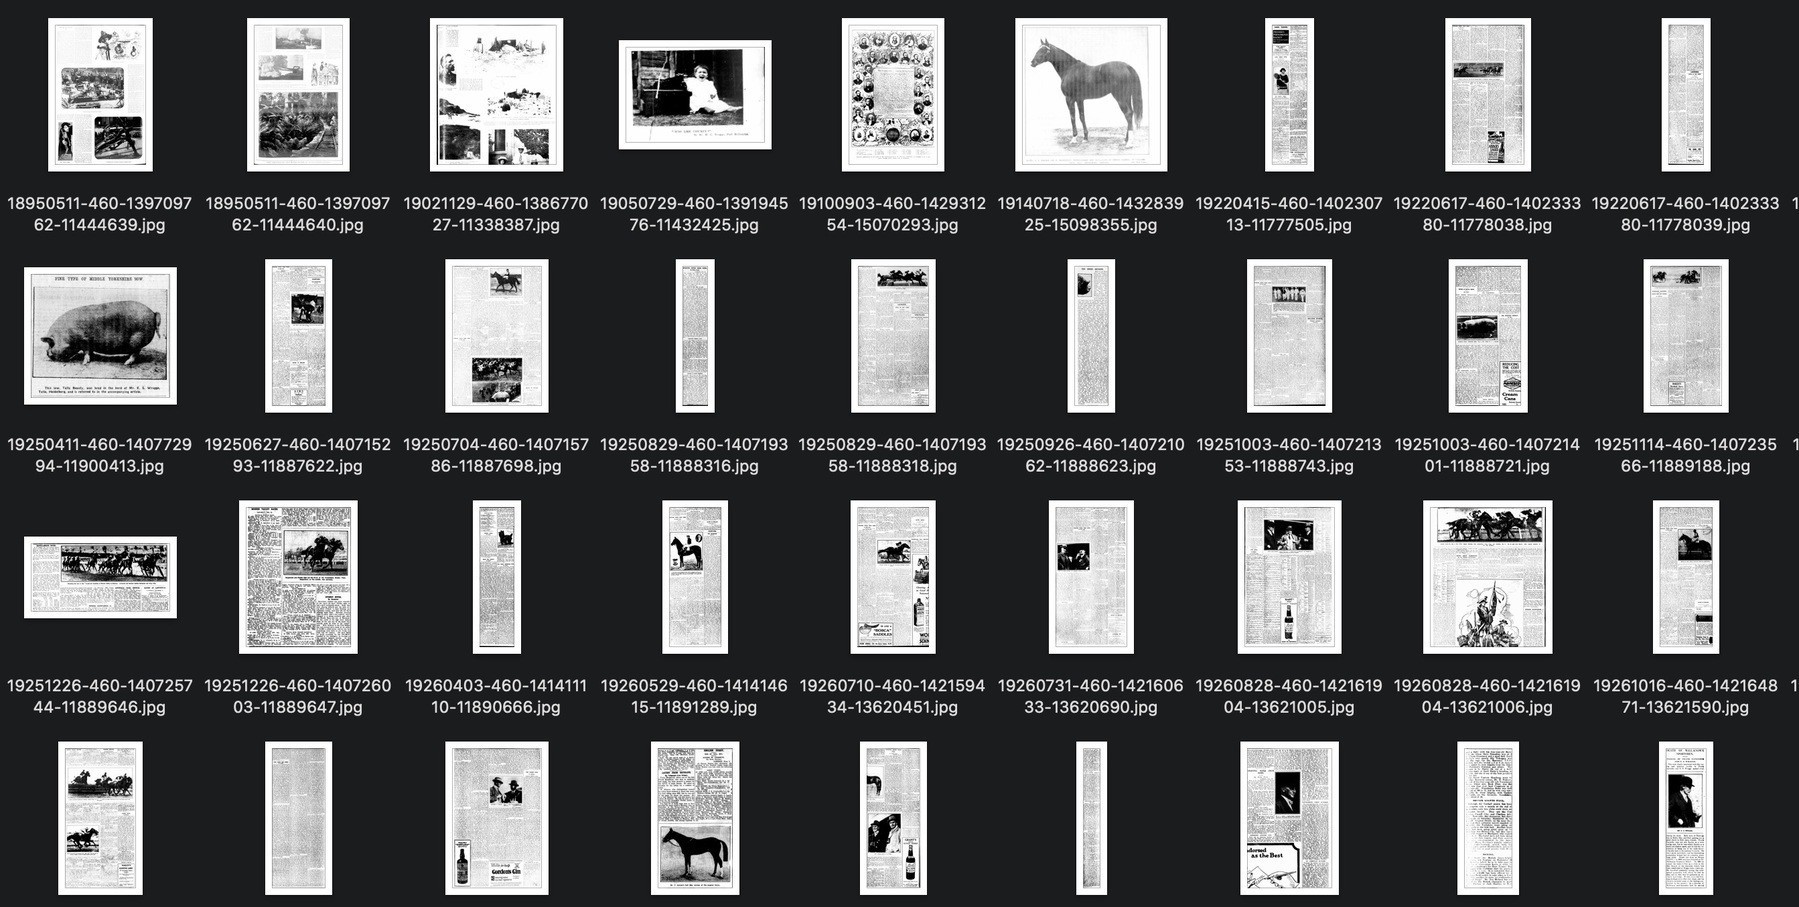 Thumbnails of newspaper articles saved as images